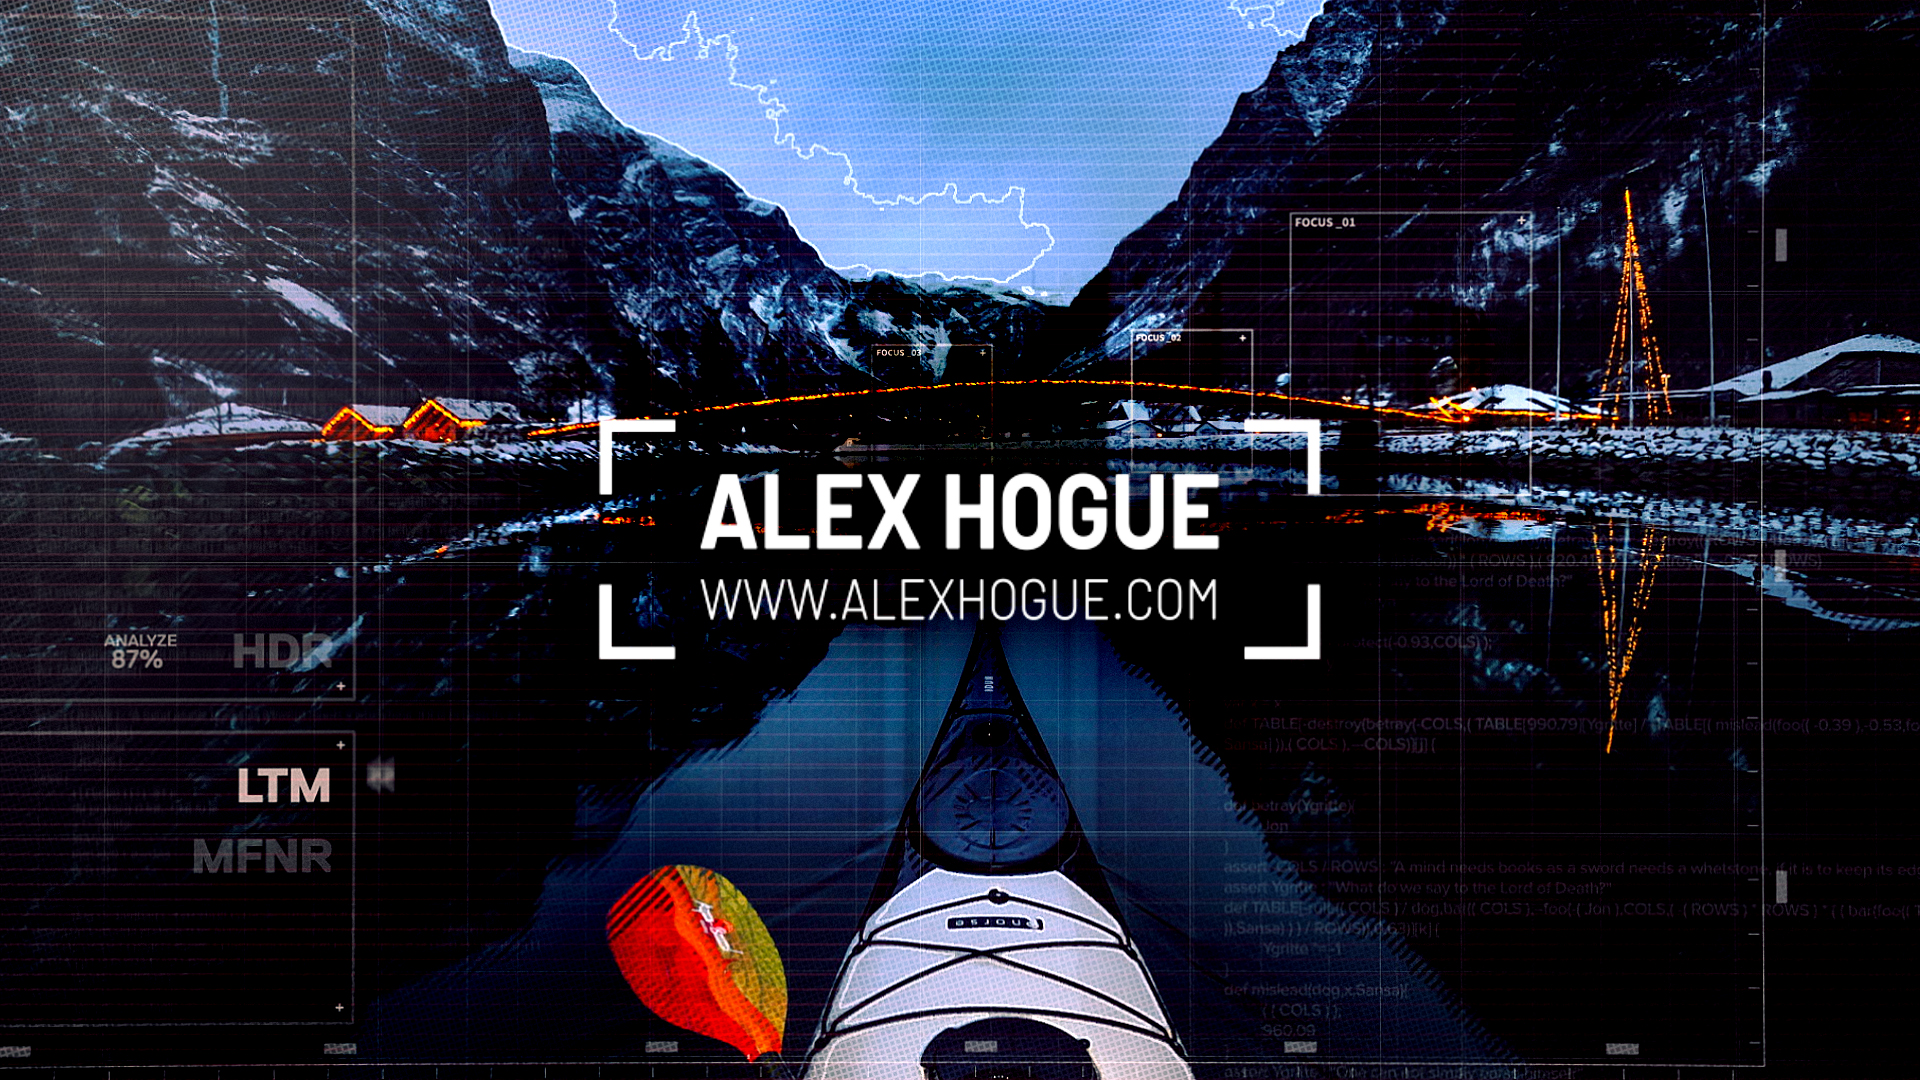 Kayak in the water with digital editing and Alex Hogue Logo and website